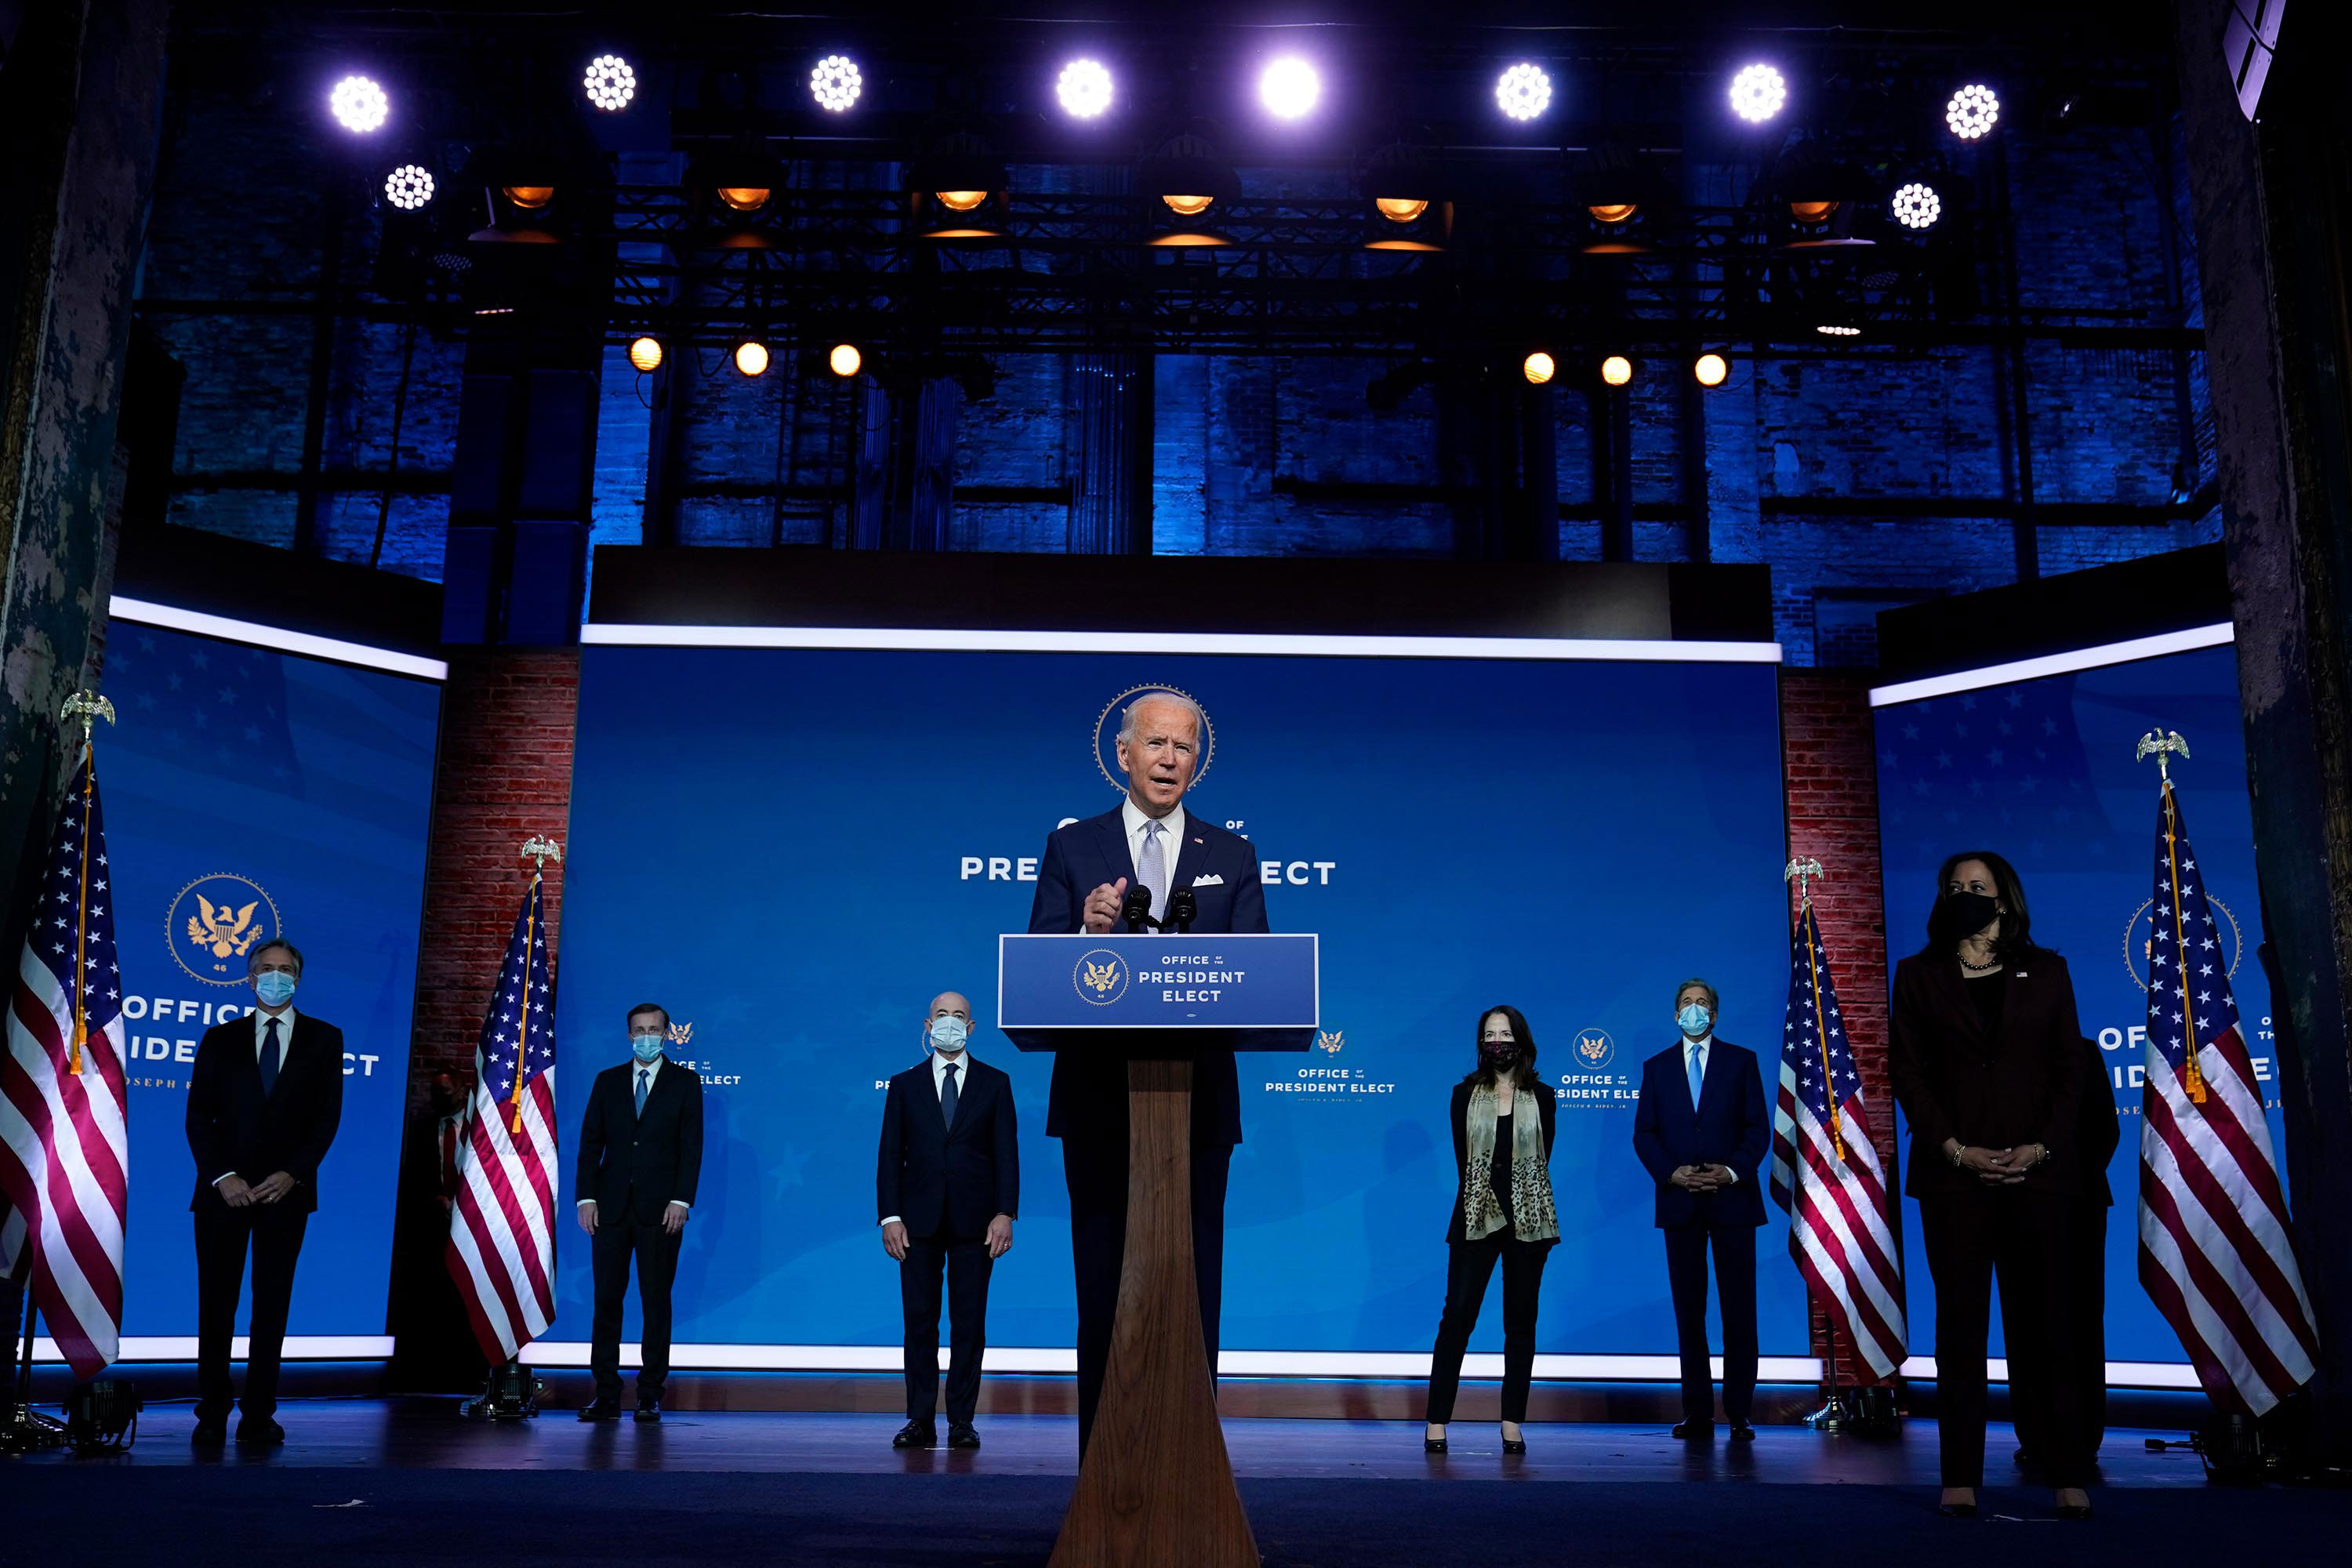 President-elect Joe Biden and Vice President-elect Kamala Harris introduce their nominees and appointees to key national security and foreign policy posts in Wilmington, Delaware, on November 24.